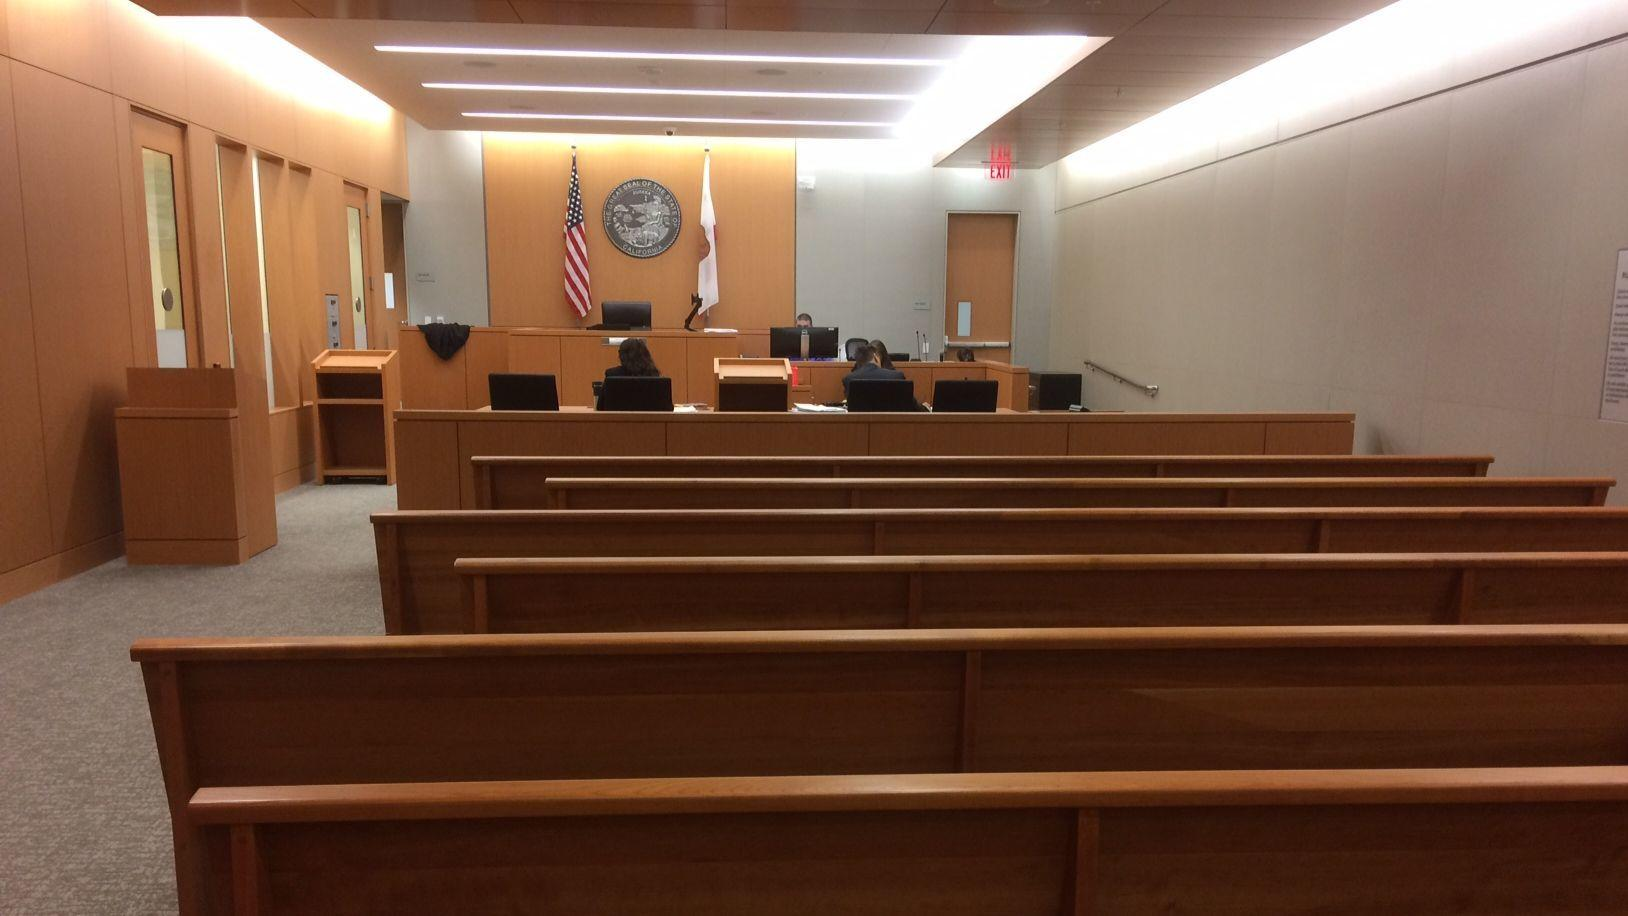 A few court staff handle some duties sitting in one of the courtrooms at the new San Diego Superior